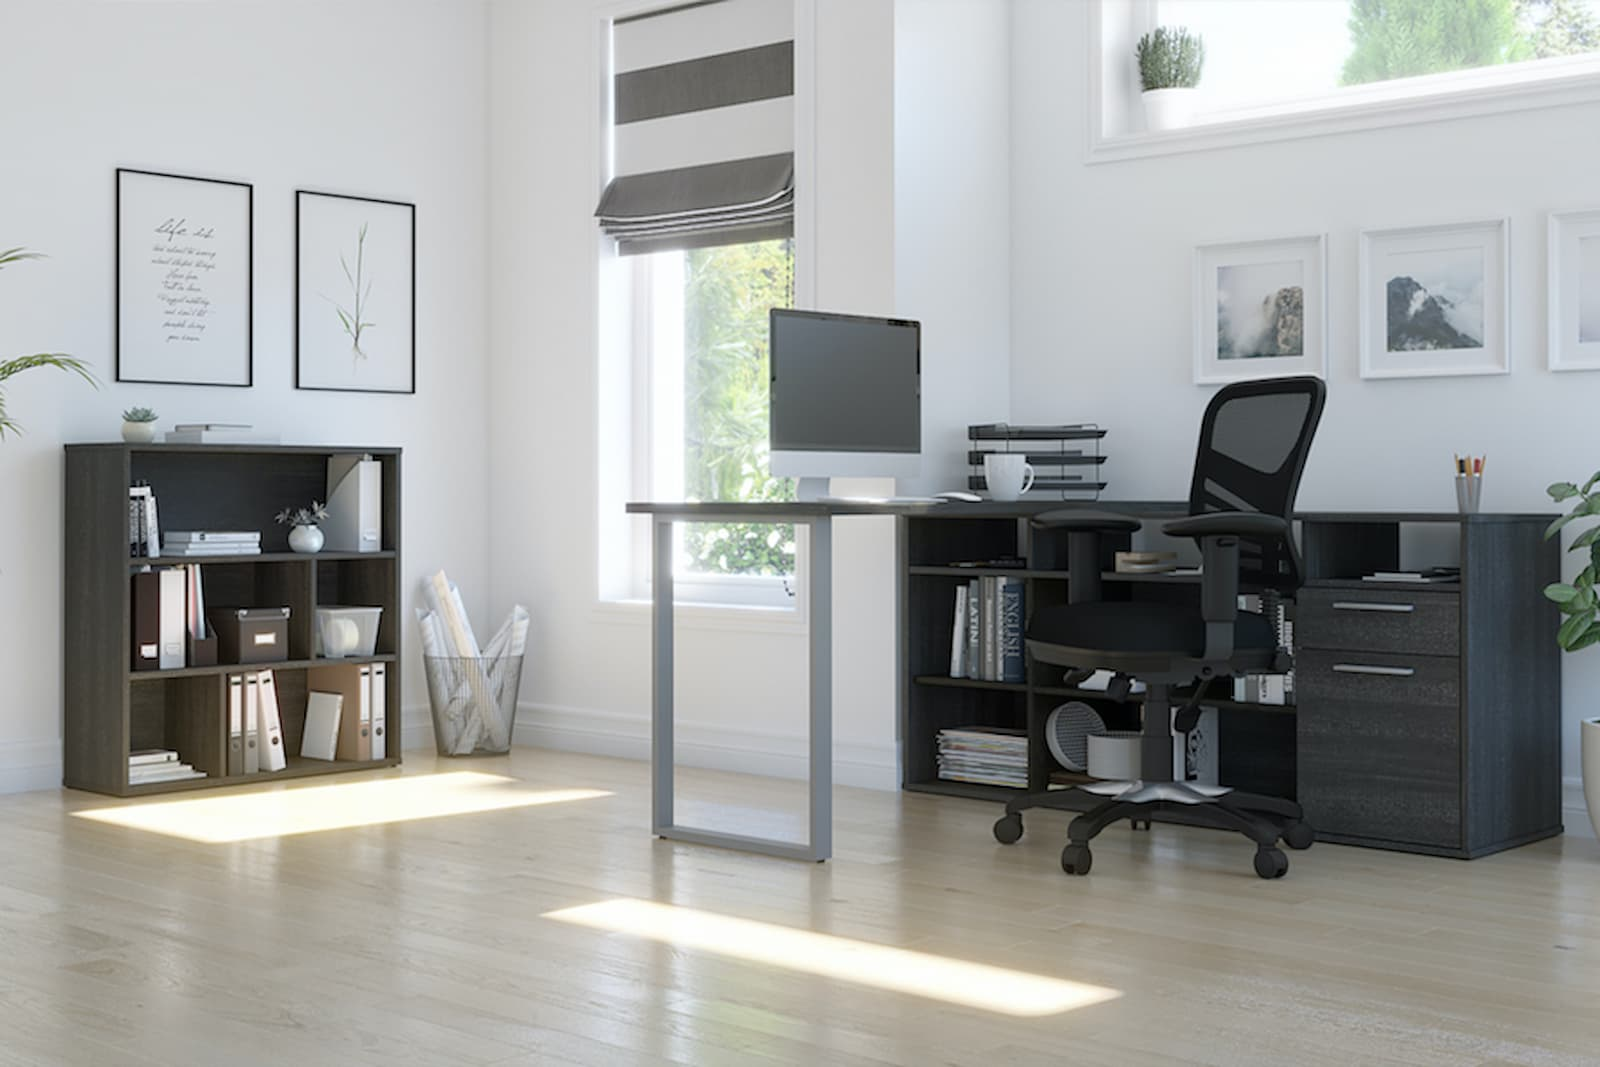 l-shaped desk with table desk and storage unit